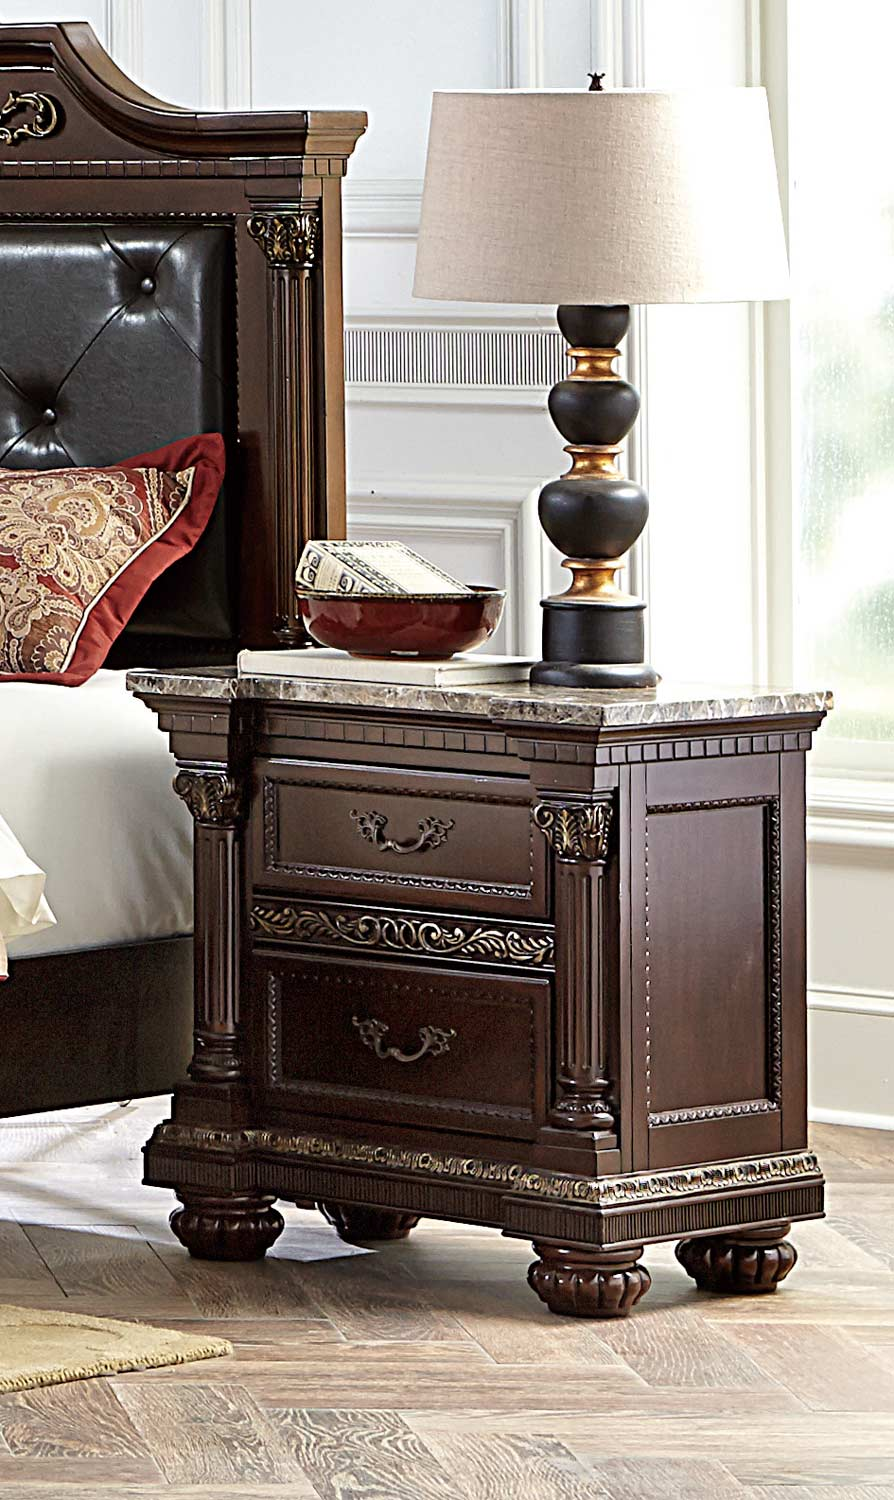 Homelegance Russian Hill Night Stand - Warm Cherry